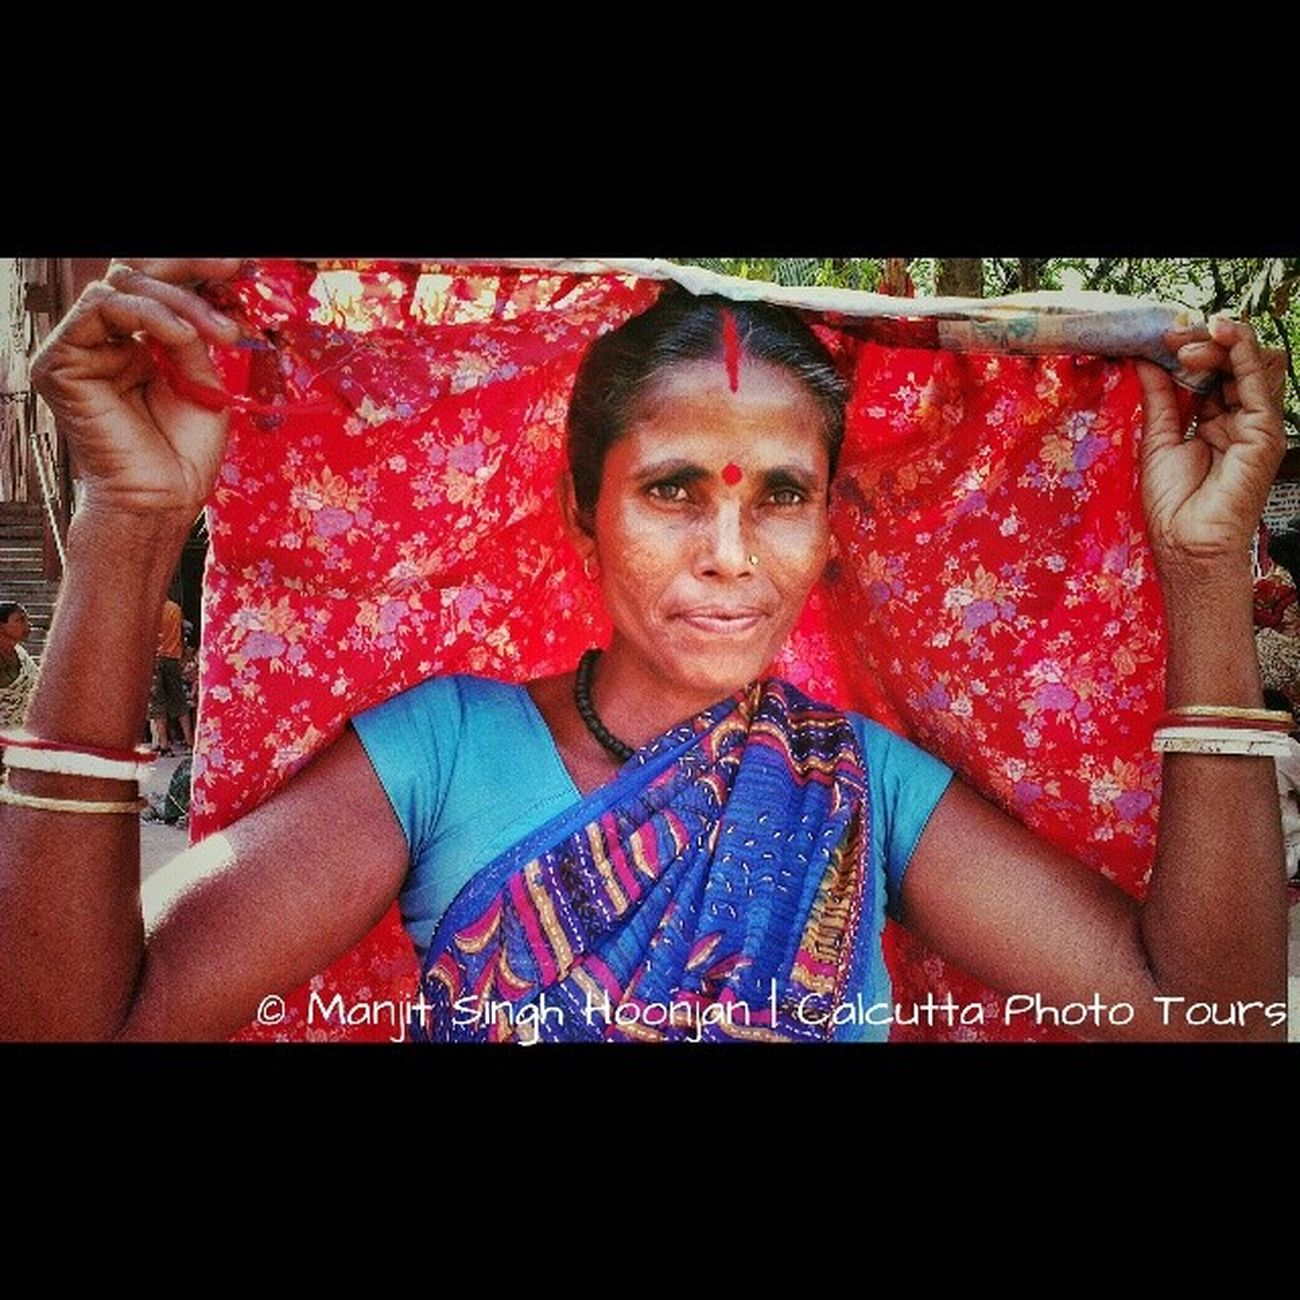 On our Hooghlysflowerfest Tour came across her drying her saree at the ghat. They are Bengalis from Maharashtra ... Off Chandrapur district. On talking to them I found out that they are from Pakistan originally (could not really find more people to confirm whether they meant East Pakistan, as all of them were saying Pakistan) and have been living in Maharashtra for generations. Speaking very native Bangla their Hindi had a Maharashtran touch to it. Many spoke Marathi too. About 700 of them had come to Bengal on a pilgrimage. Fascinating!!! What makes leading these tours the fun they actually are. I want to grow old doing this. But now the sad part. Since my back was acting up I had not carried my camera with me! I kicked myself when I saw all of them there today. Lesson I learned today : Never be without your camera. Incrediblecalcutta whywealllovecalcutta history tradition ethinicgroups stories wow nocamera